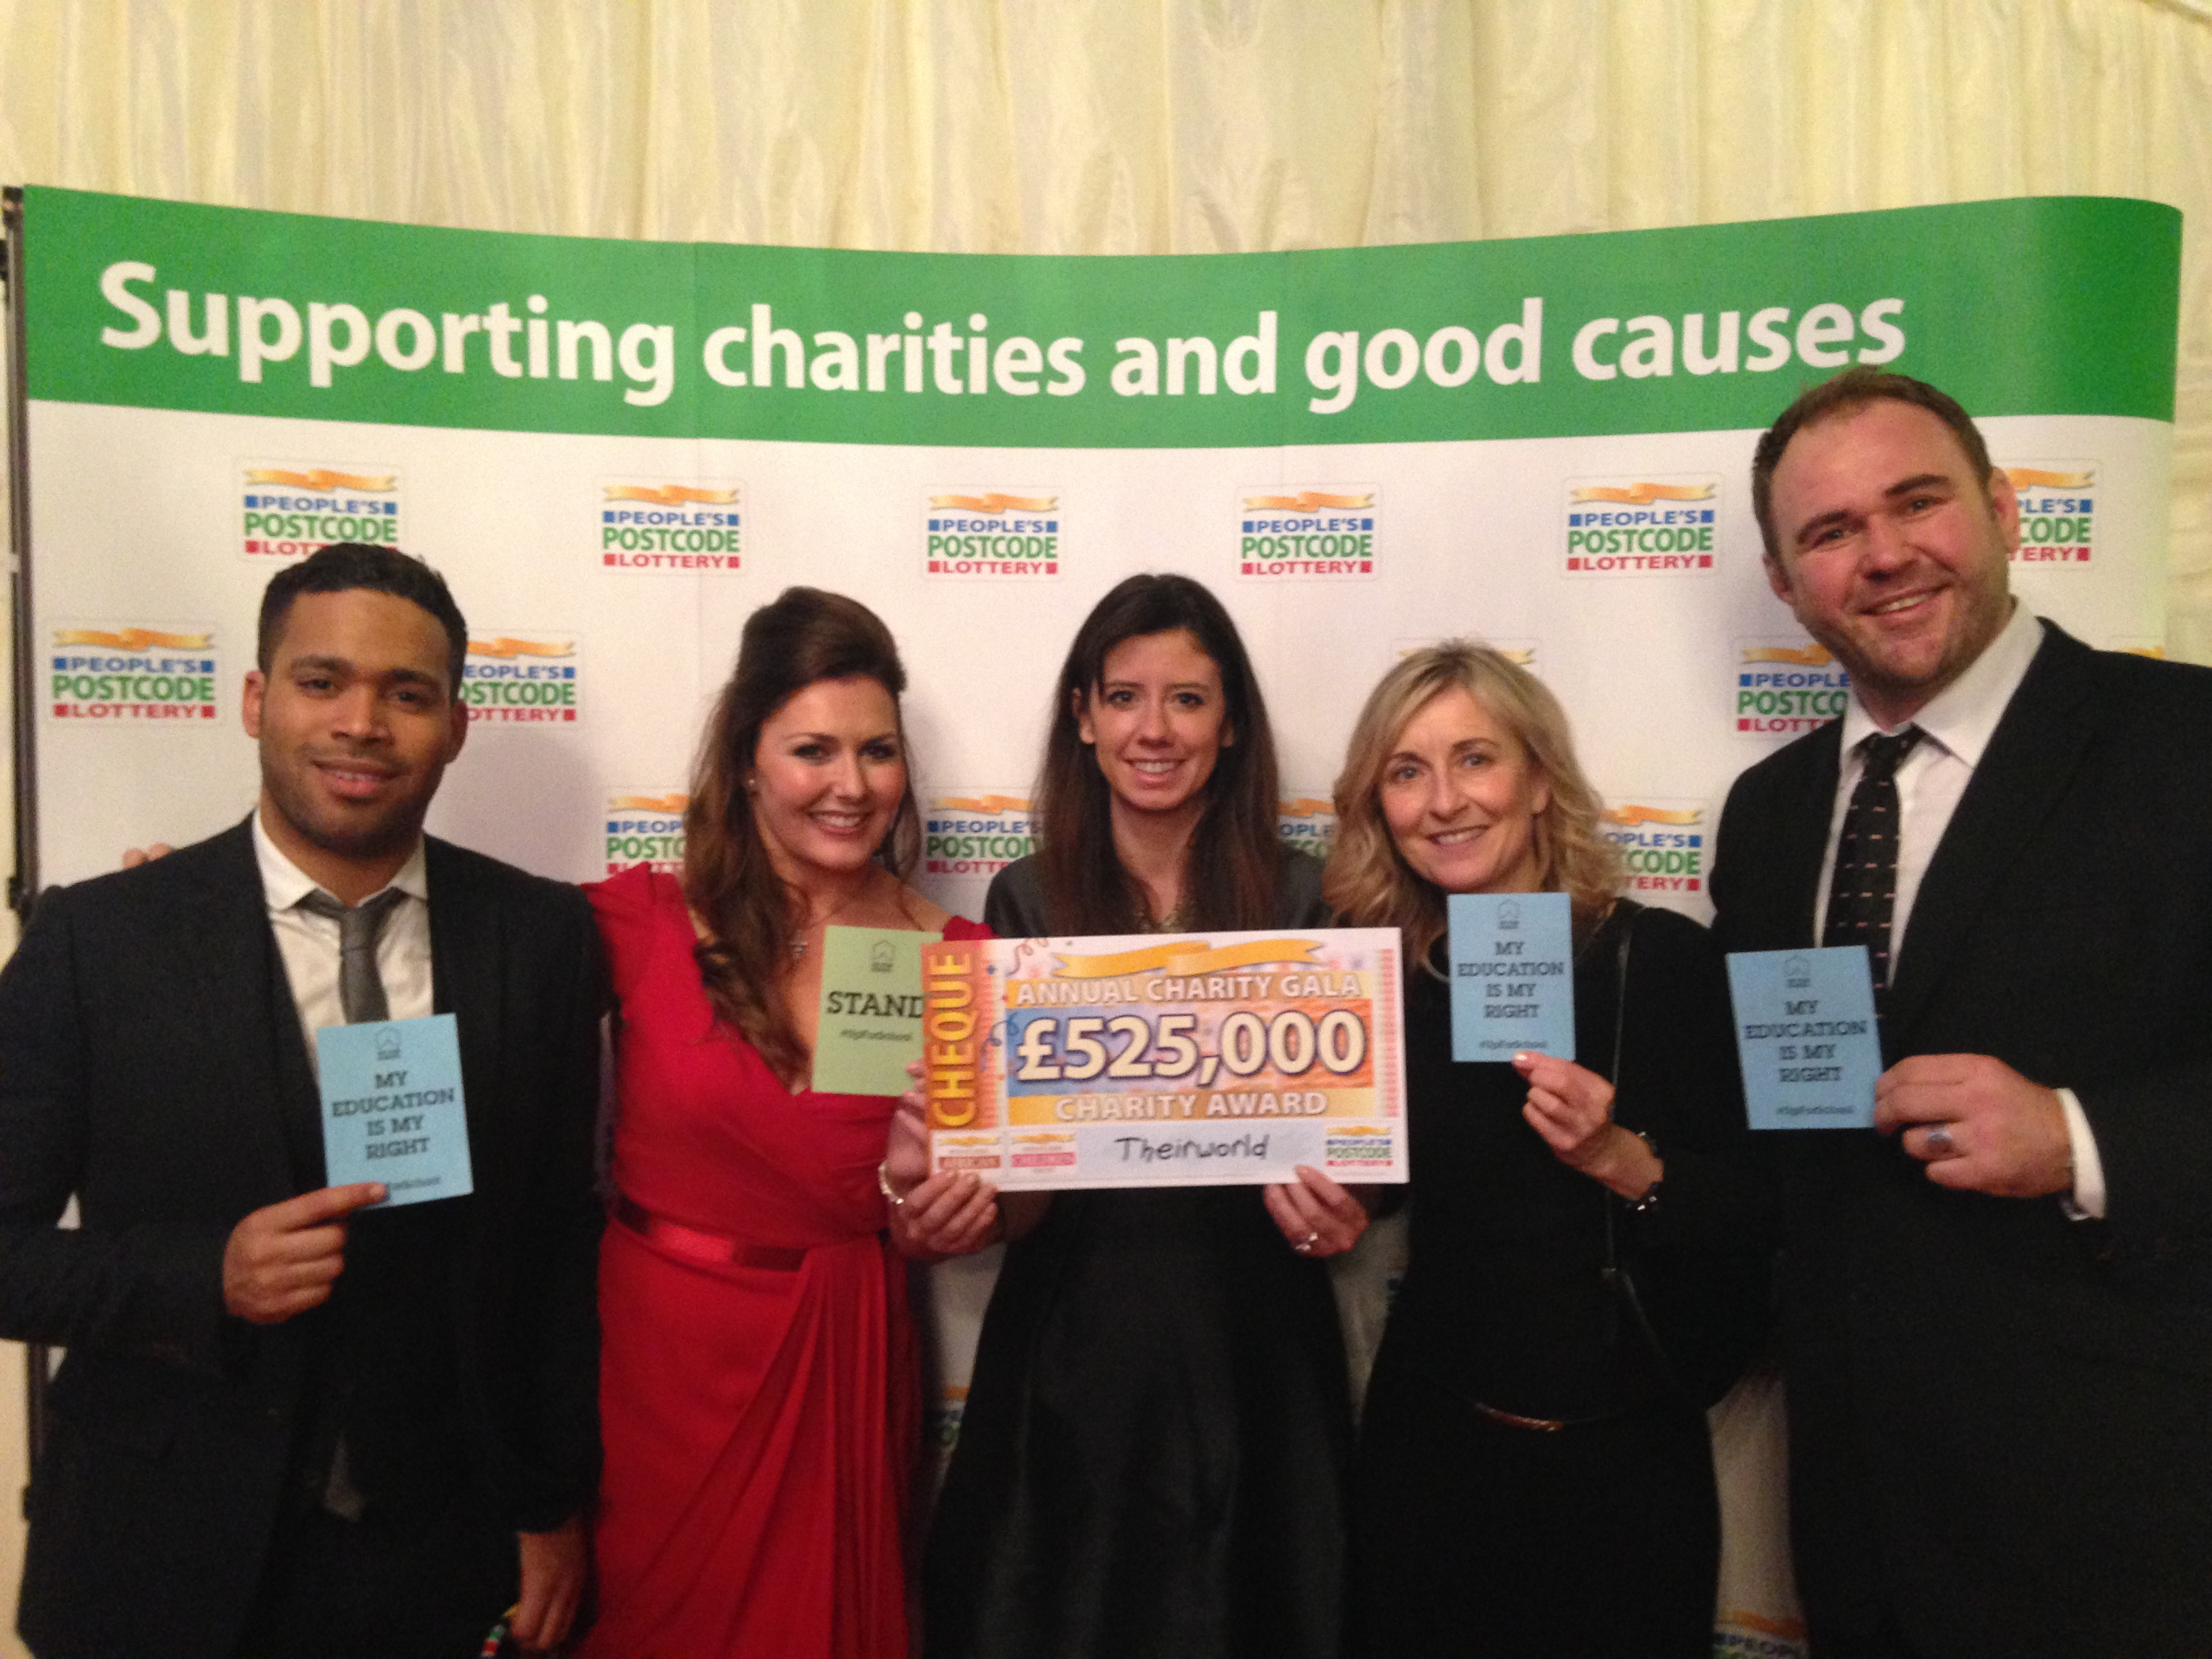 People's Postcode Lottery UK Awards Grant to Fund Safe Schools and Education Without Borders